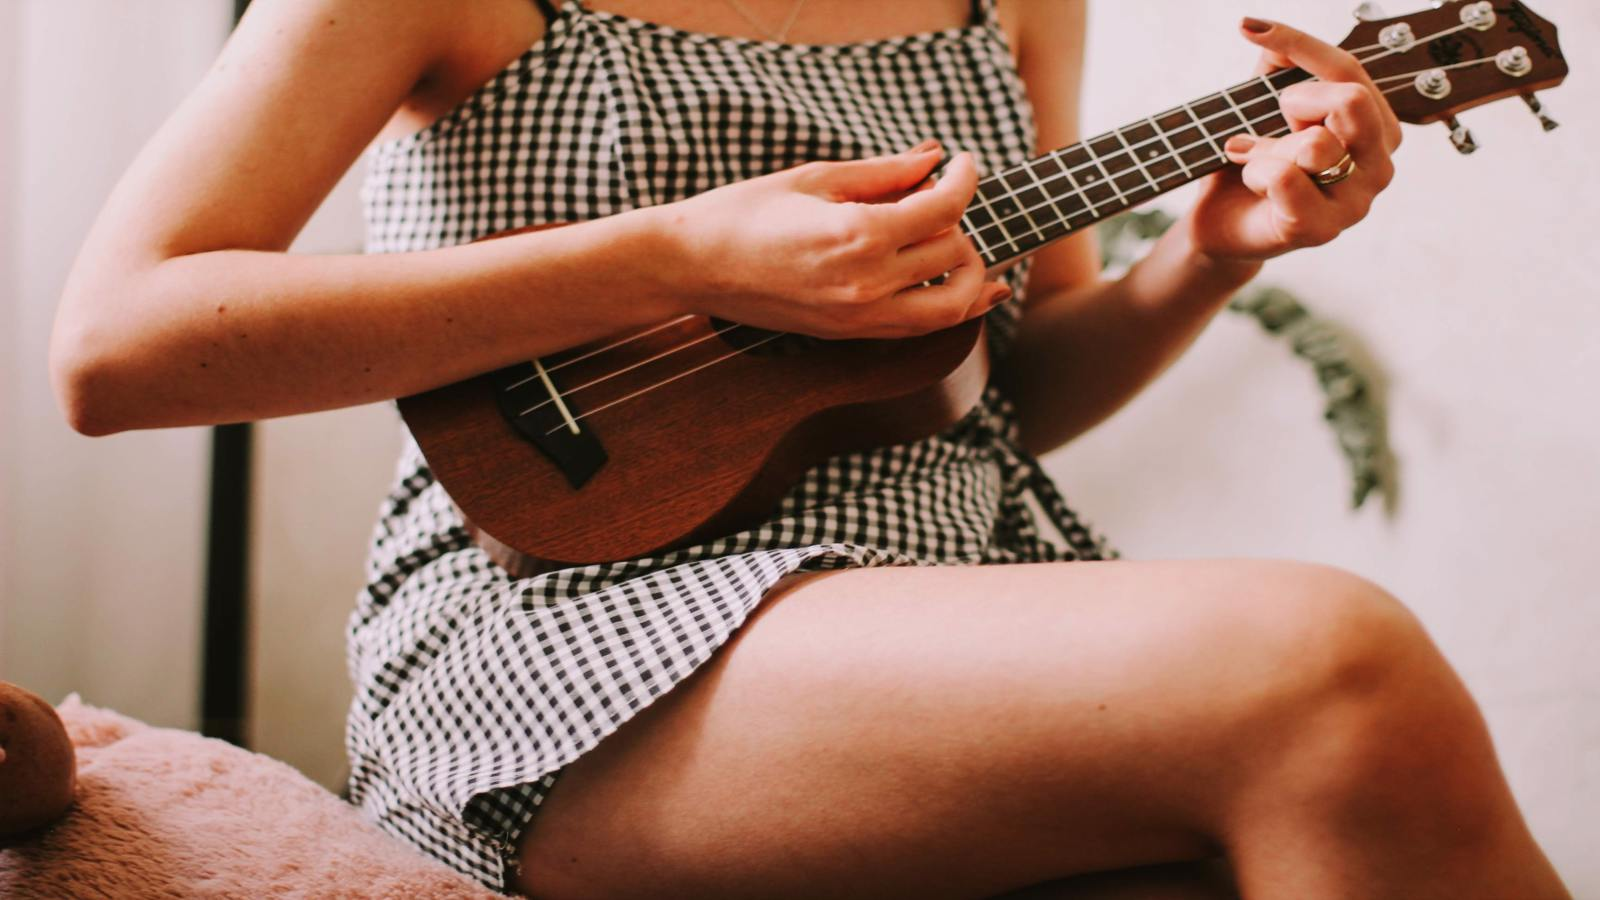 Learn Spanish With Music Videos: 4 Great Resources to Learn Spanish With Tunes And Lyrics